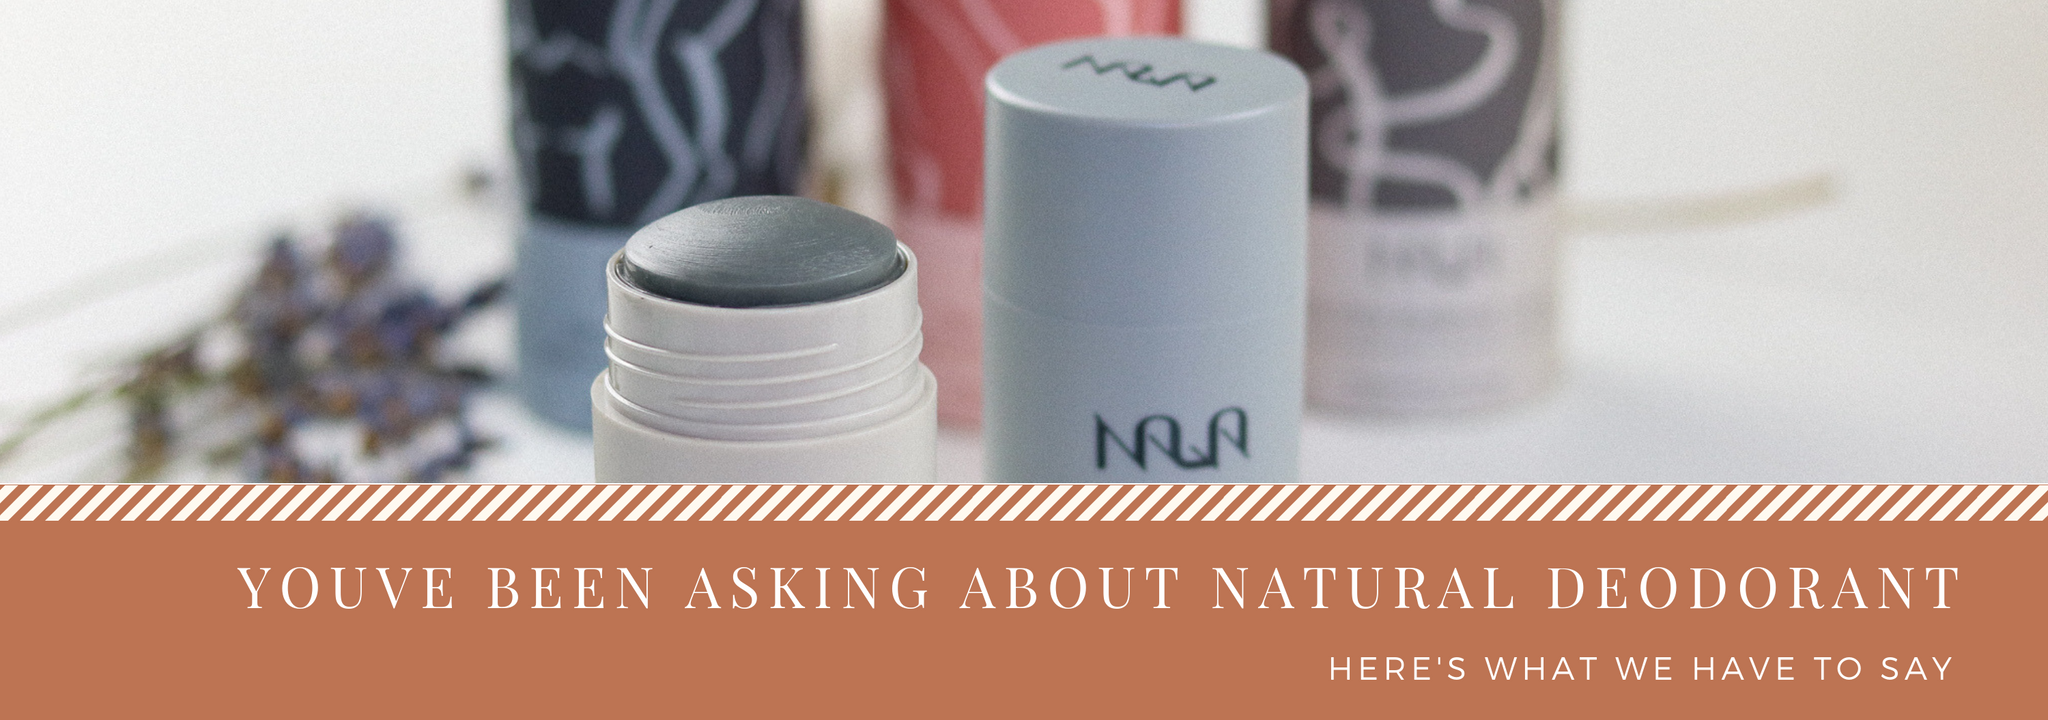 You've Been Asking About Natural Deodorant, Here's My Answer